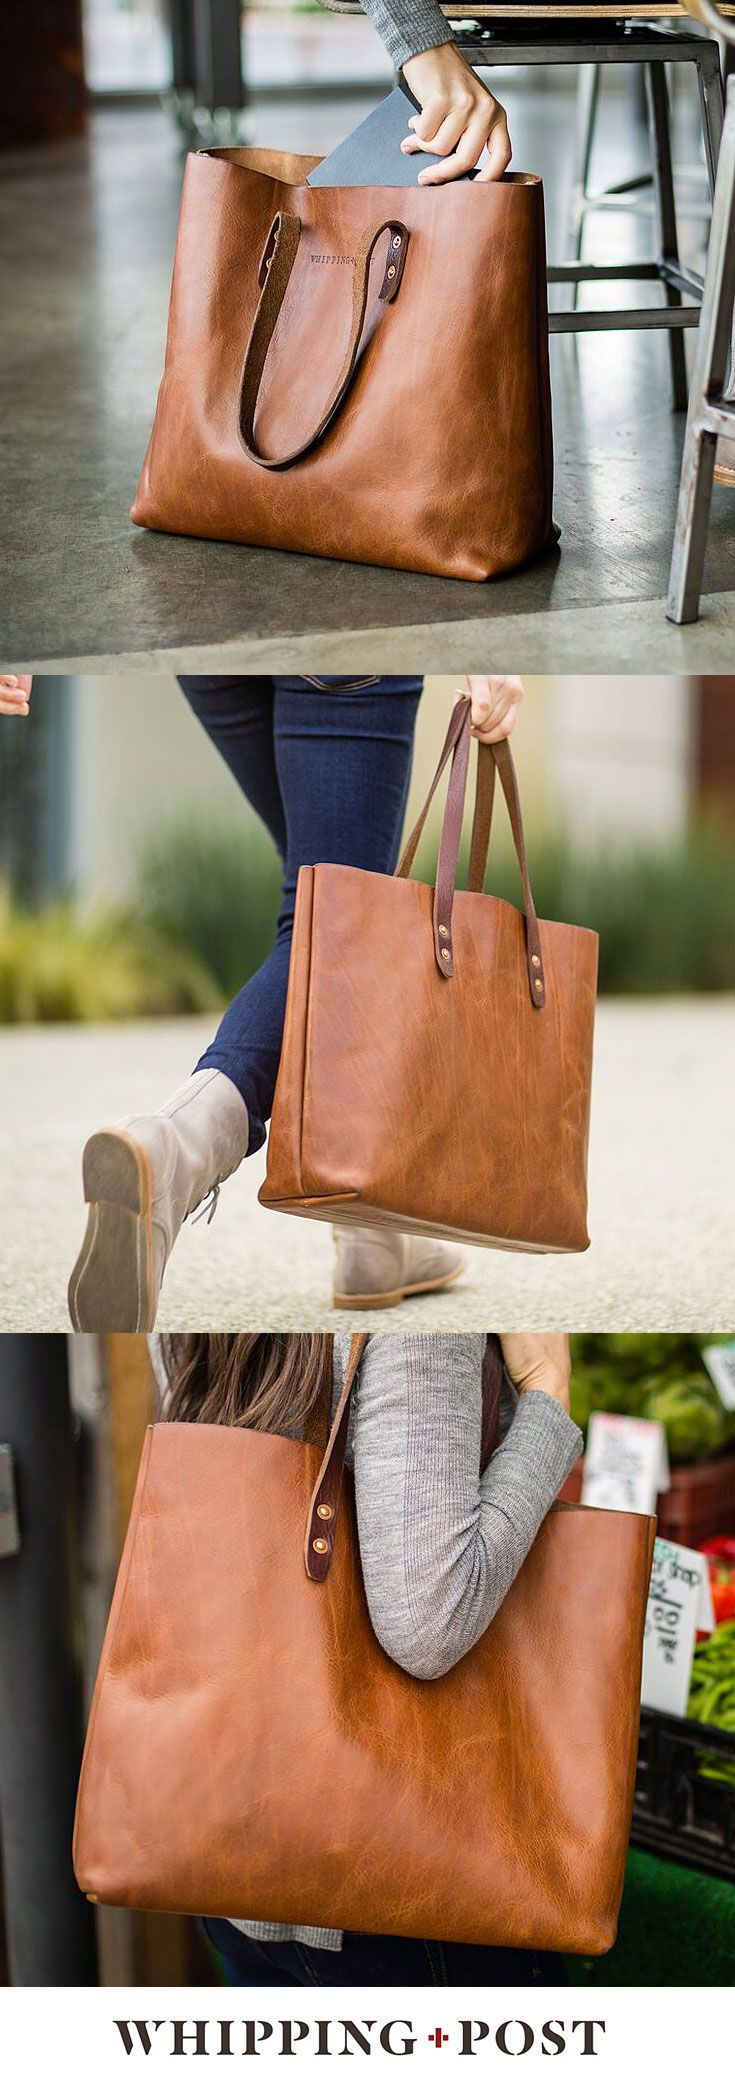 A solidly built tote bag is an everyday staple. Day, night, travel, errands - the Whipping Post Vintage Tote bag embodies utility.